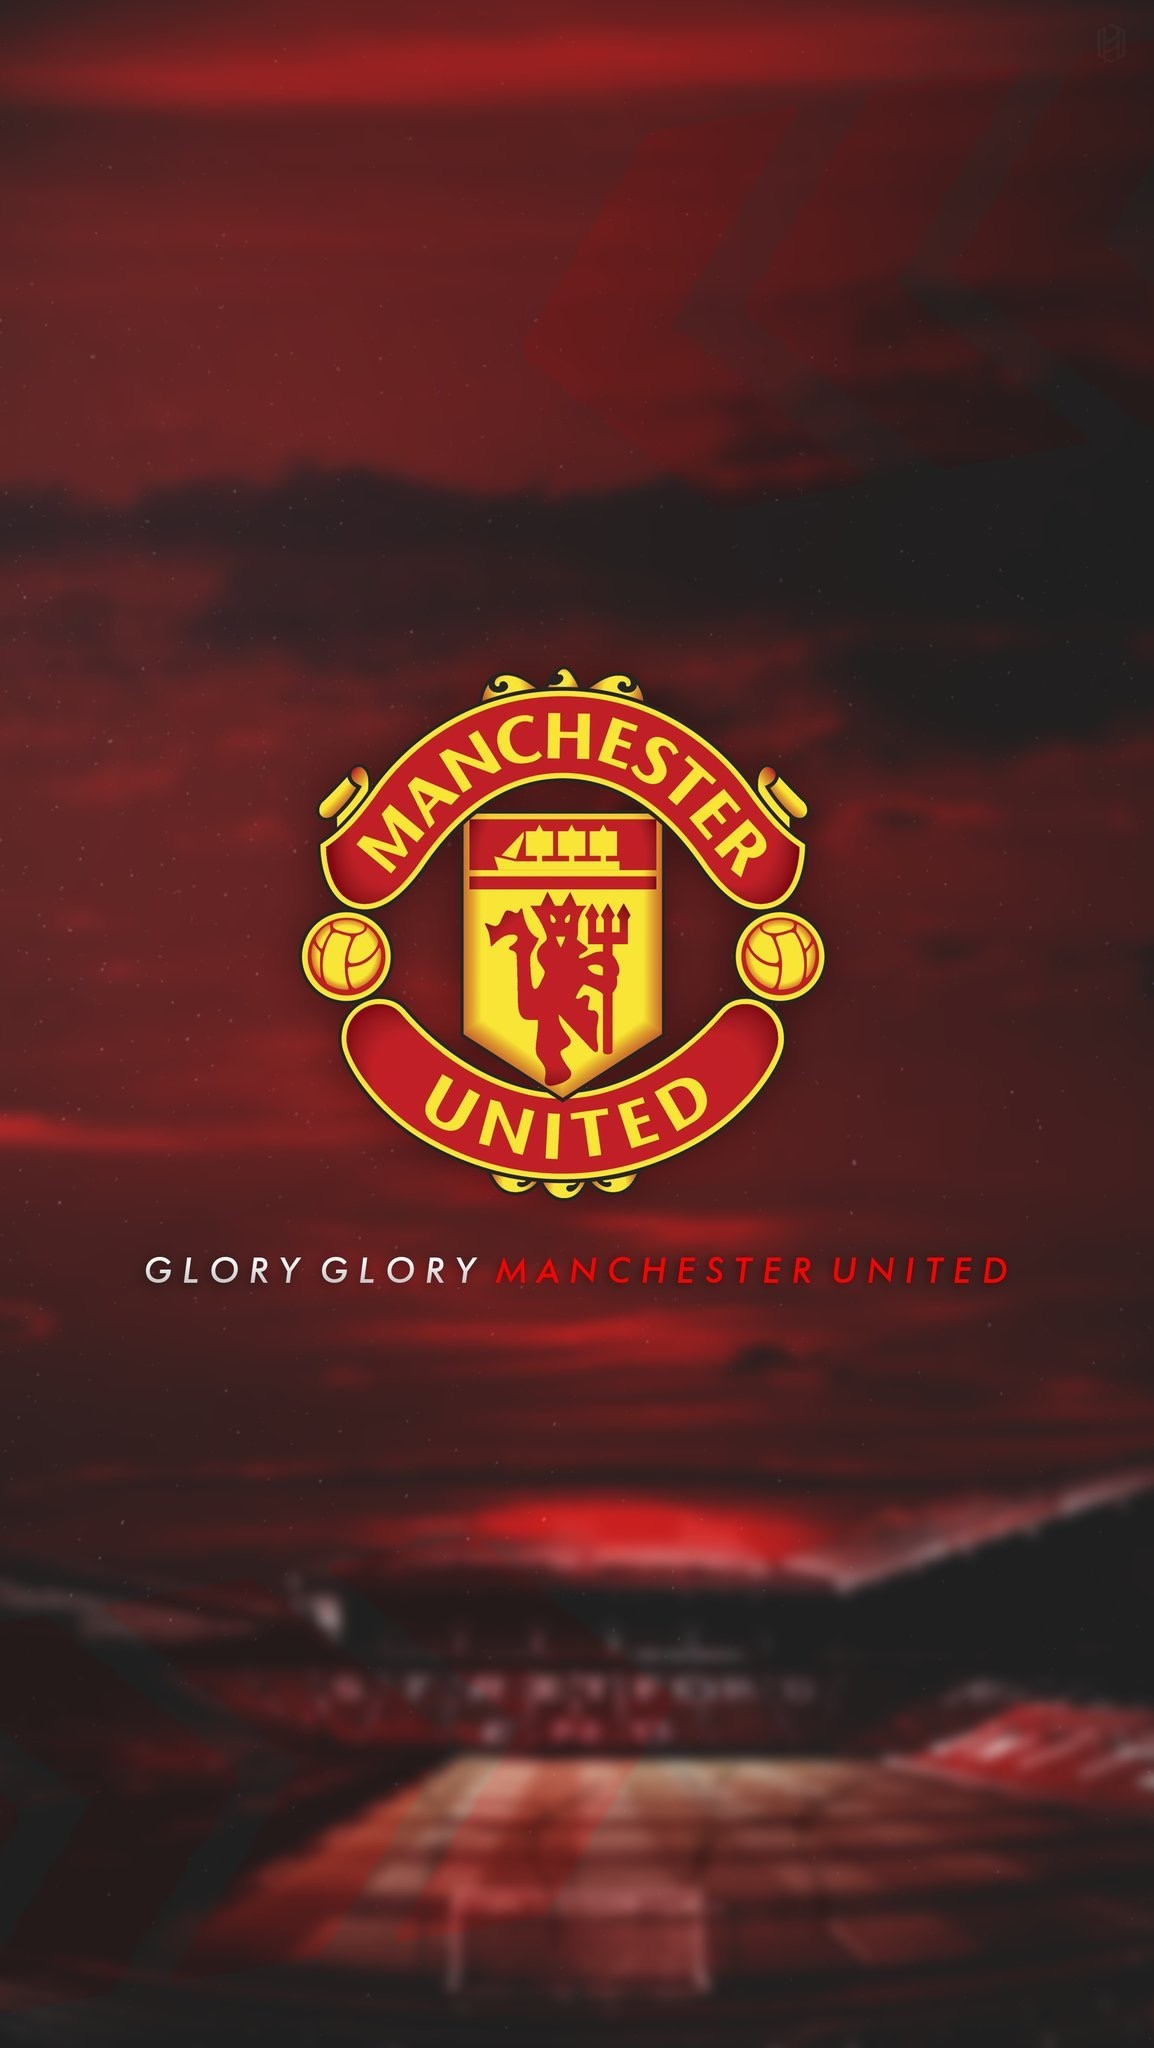 Manchester united wallpaper 2018 71 images - Manchester united latest wallpapers hd ...